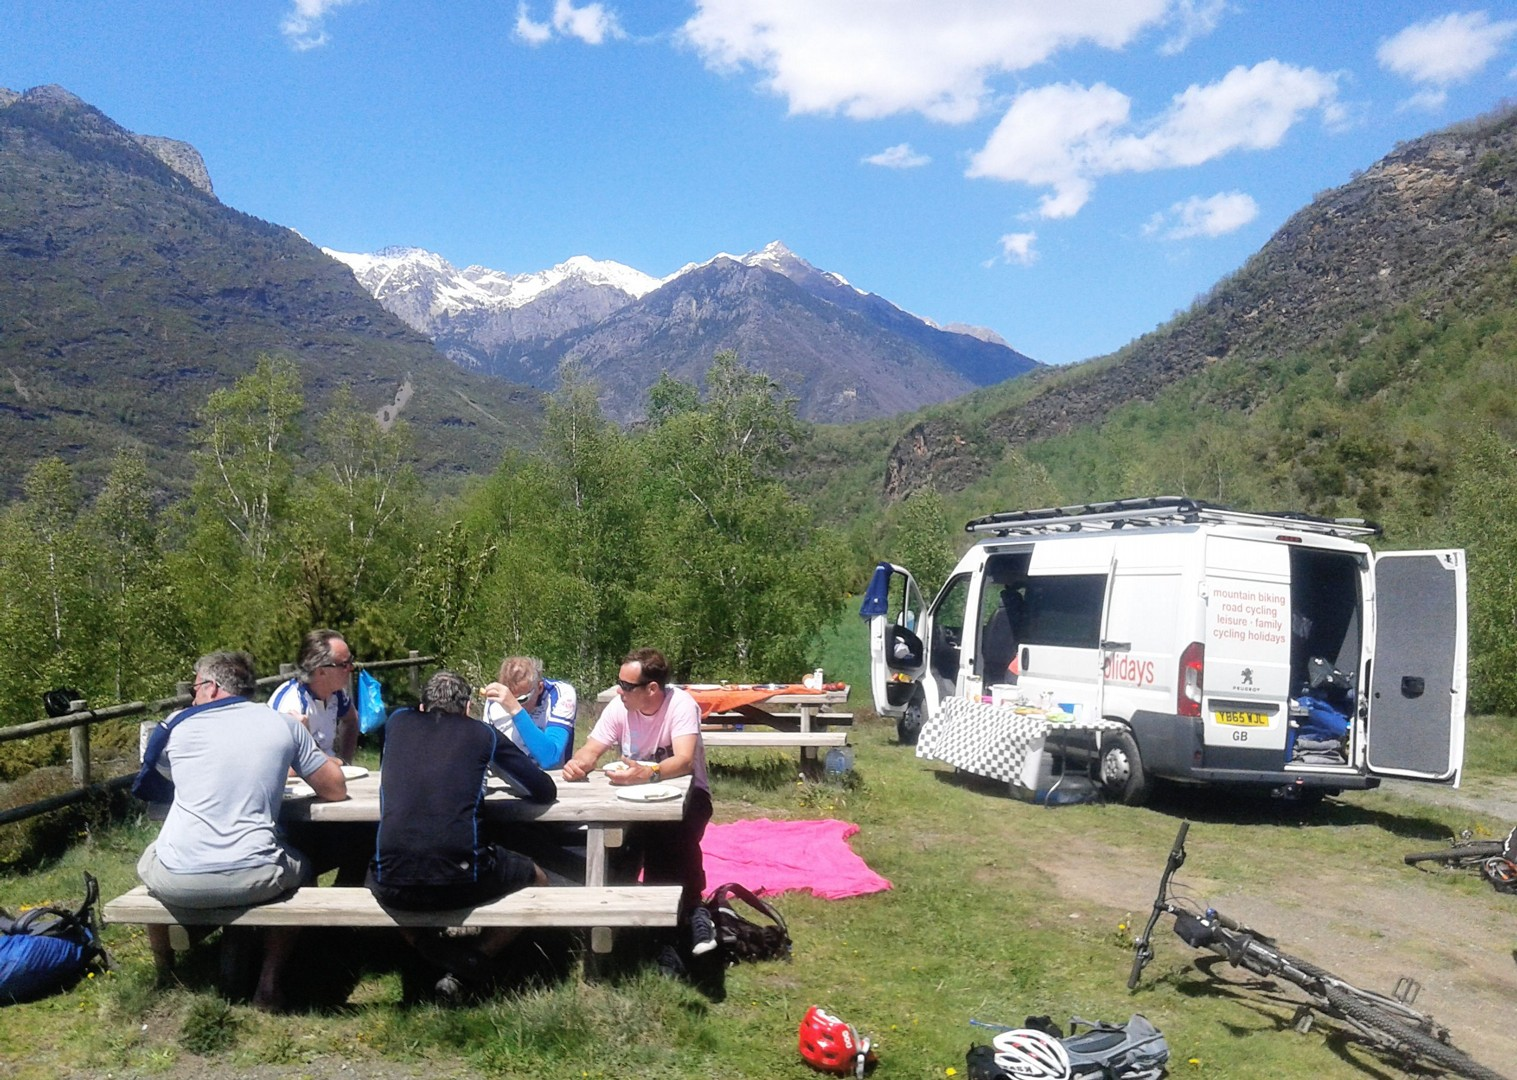 20160516_150356.jpg - Spain - Pyrenees Enduro - Guided Mountain Bike Holiday - Mountain Biking